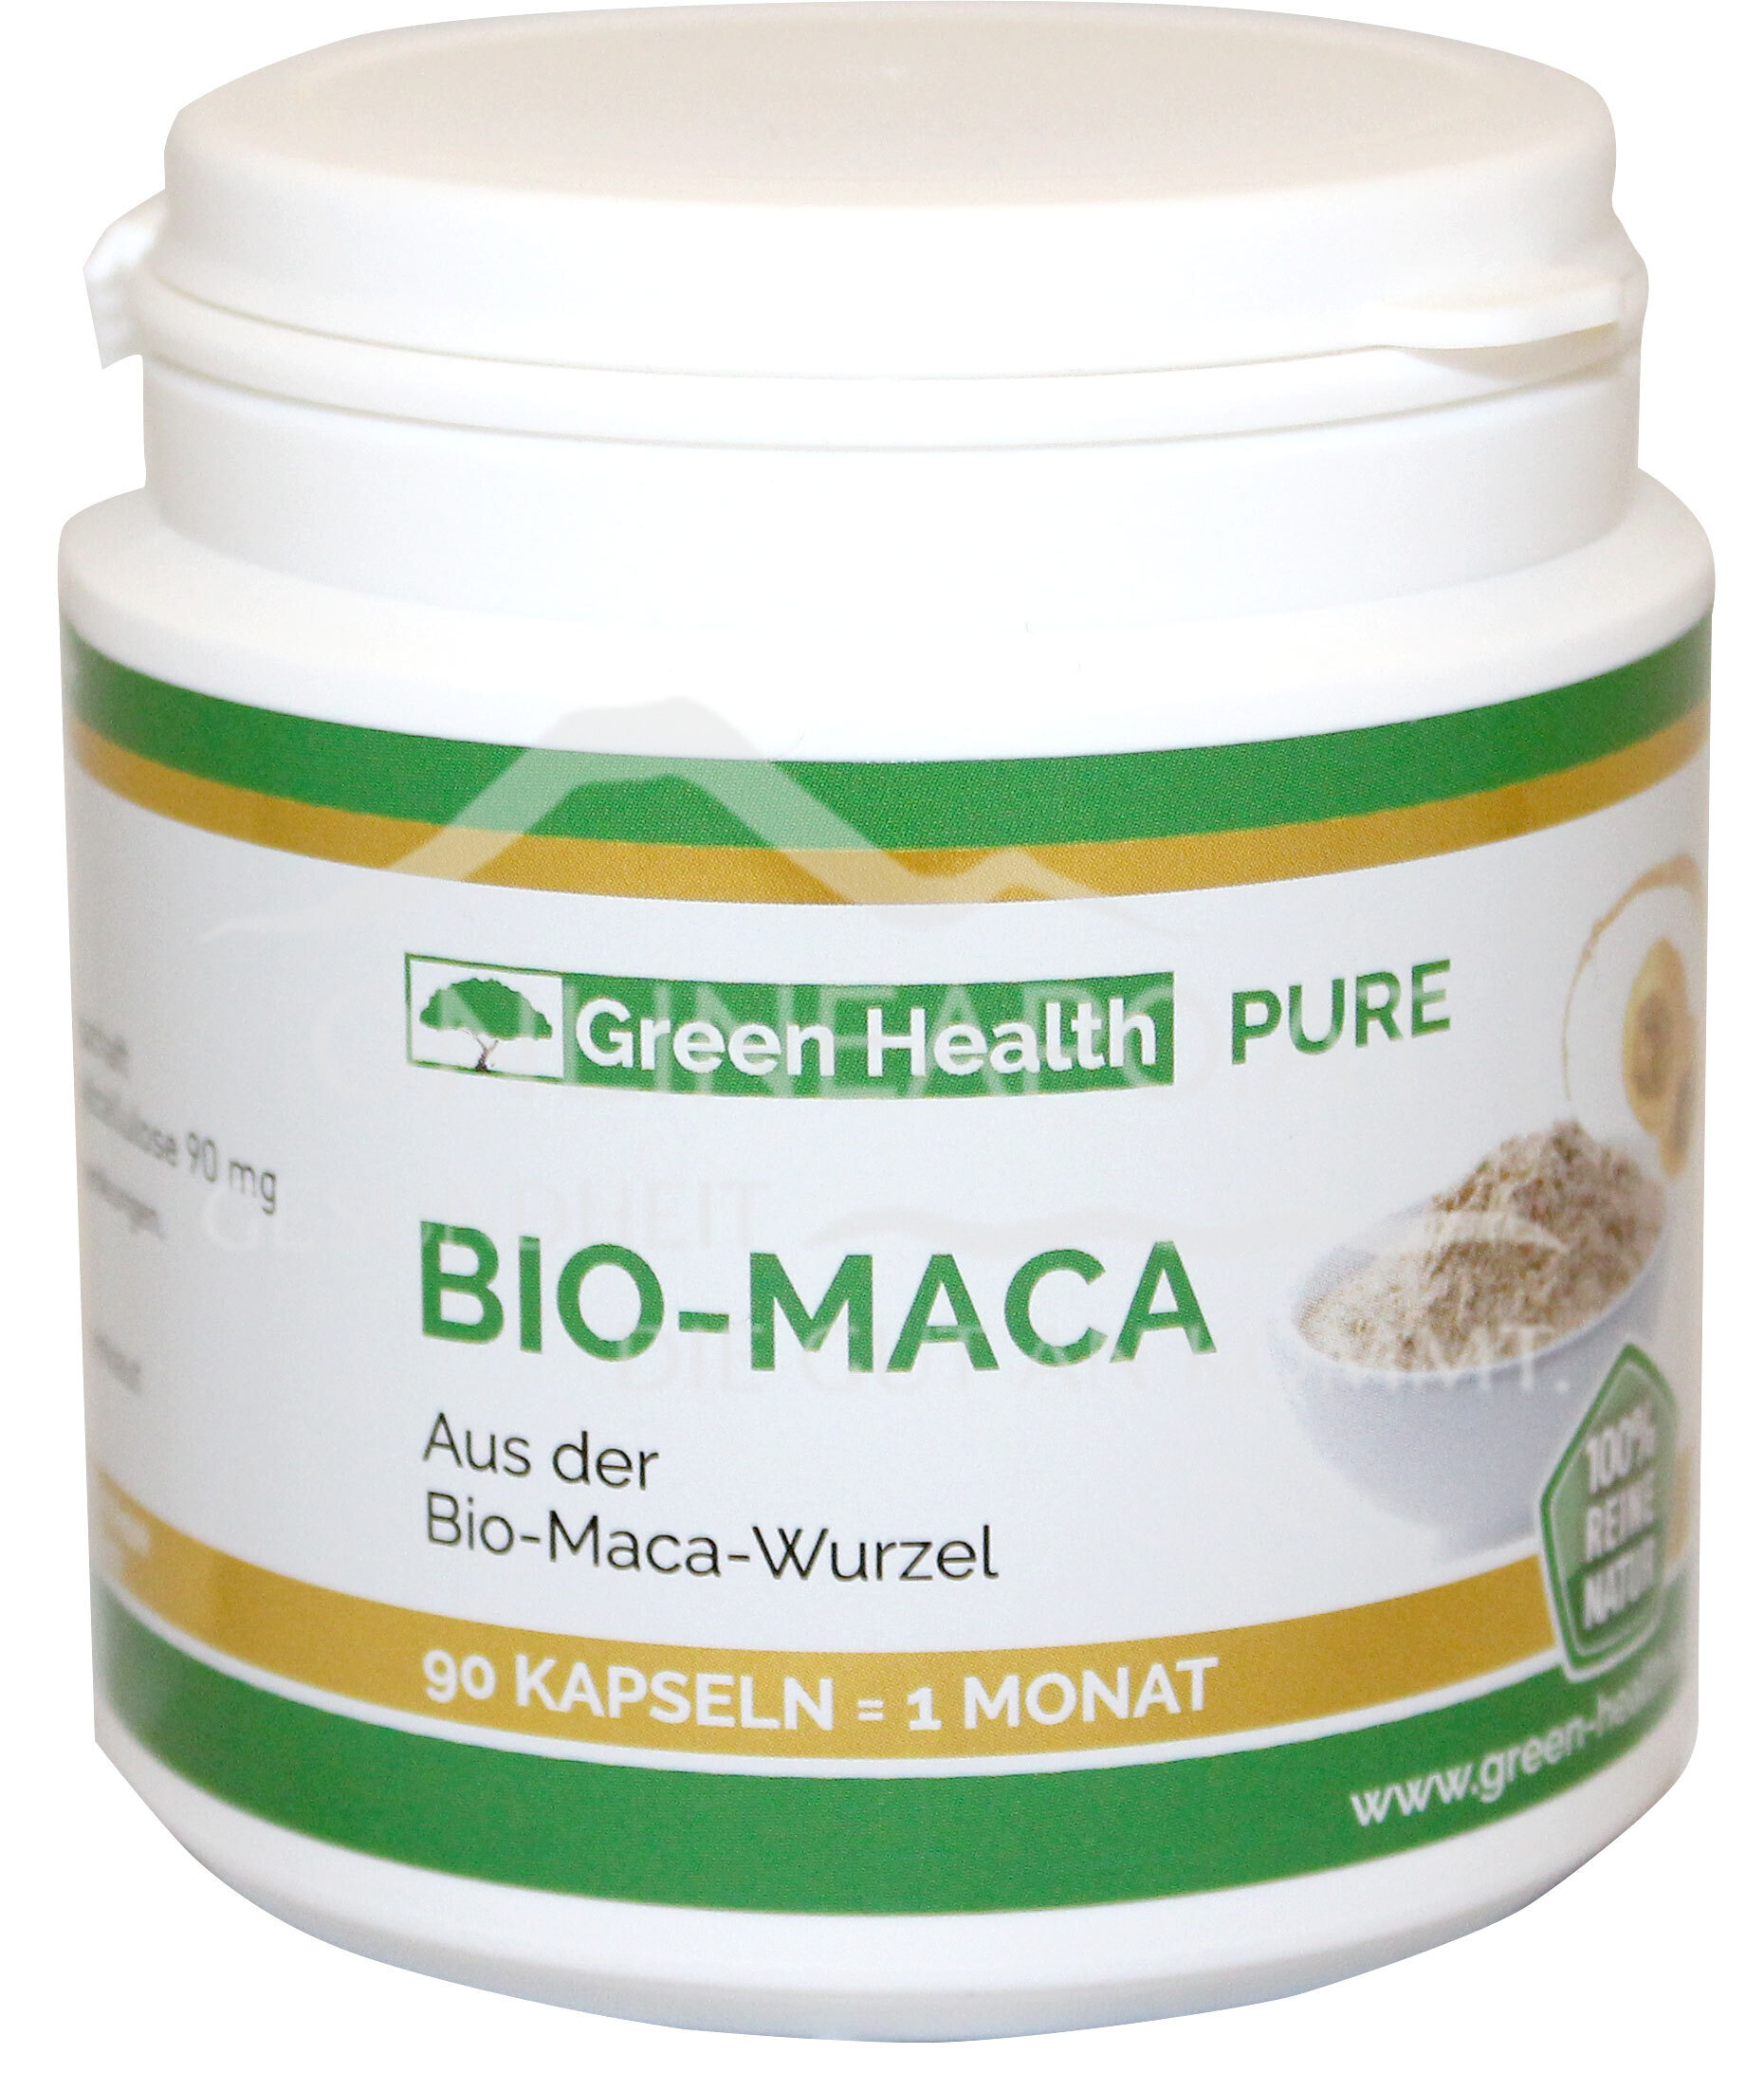 Green Health PURE Bio-Maca